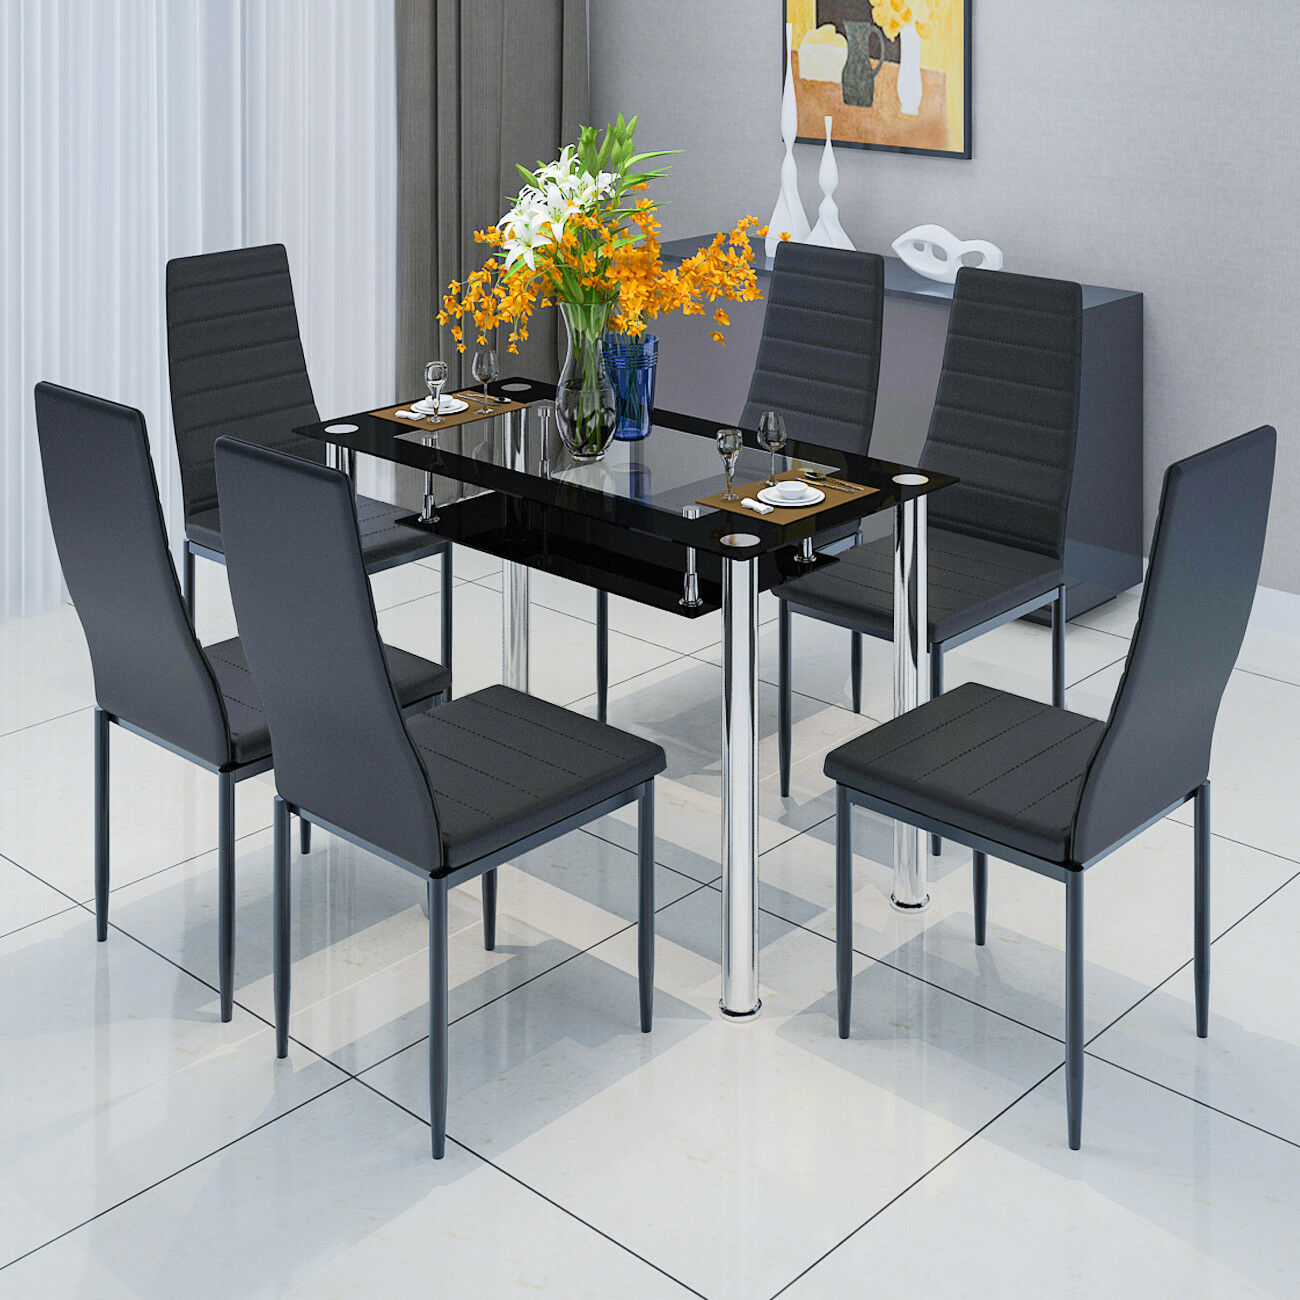 Dining Chair Set Of 6 Details About 2 Tier Tempered Glass Table 4 6 Dining Chairs Set Metal Legs Dining Room Kitchen